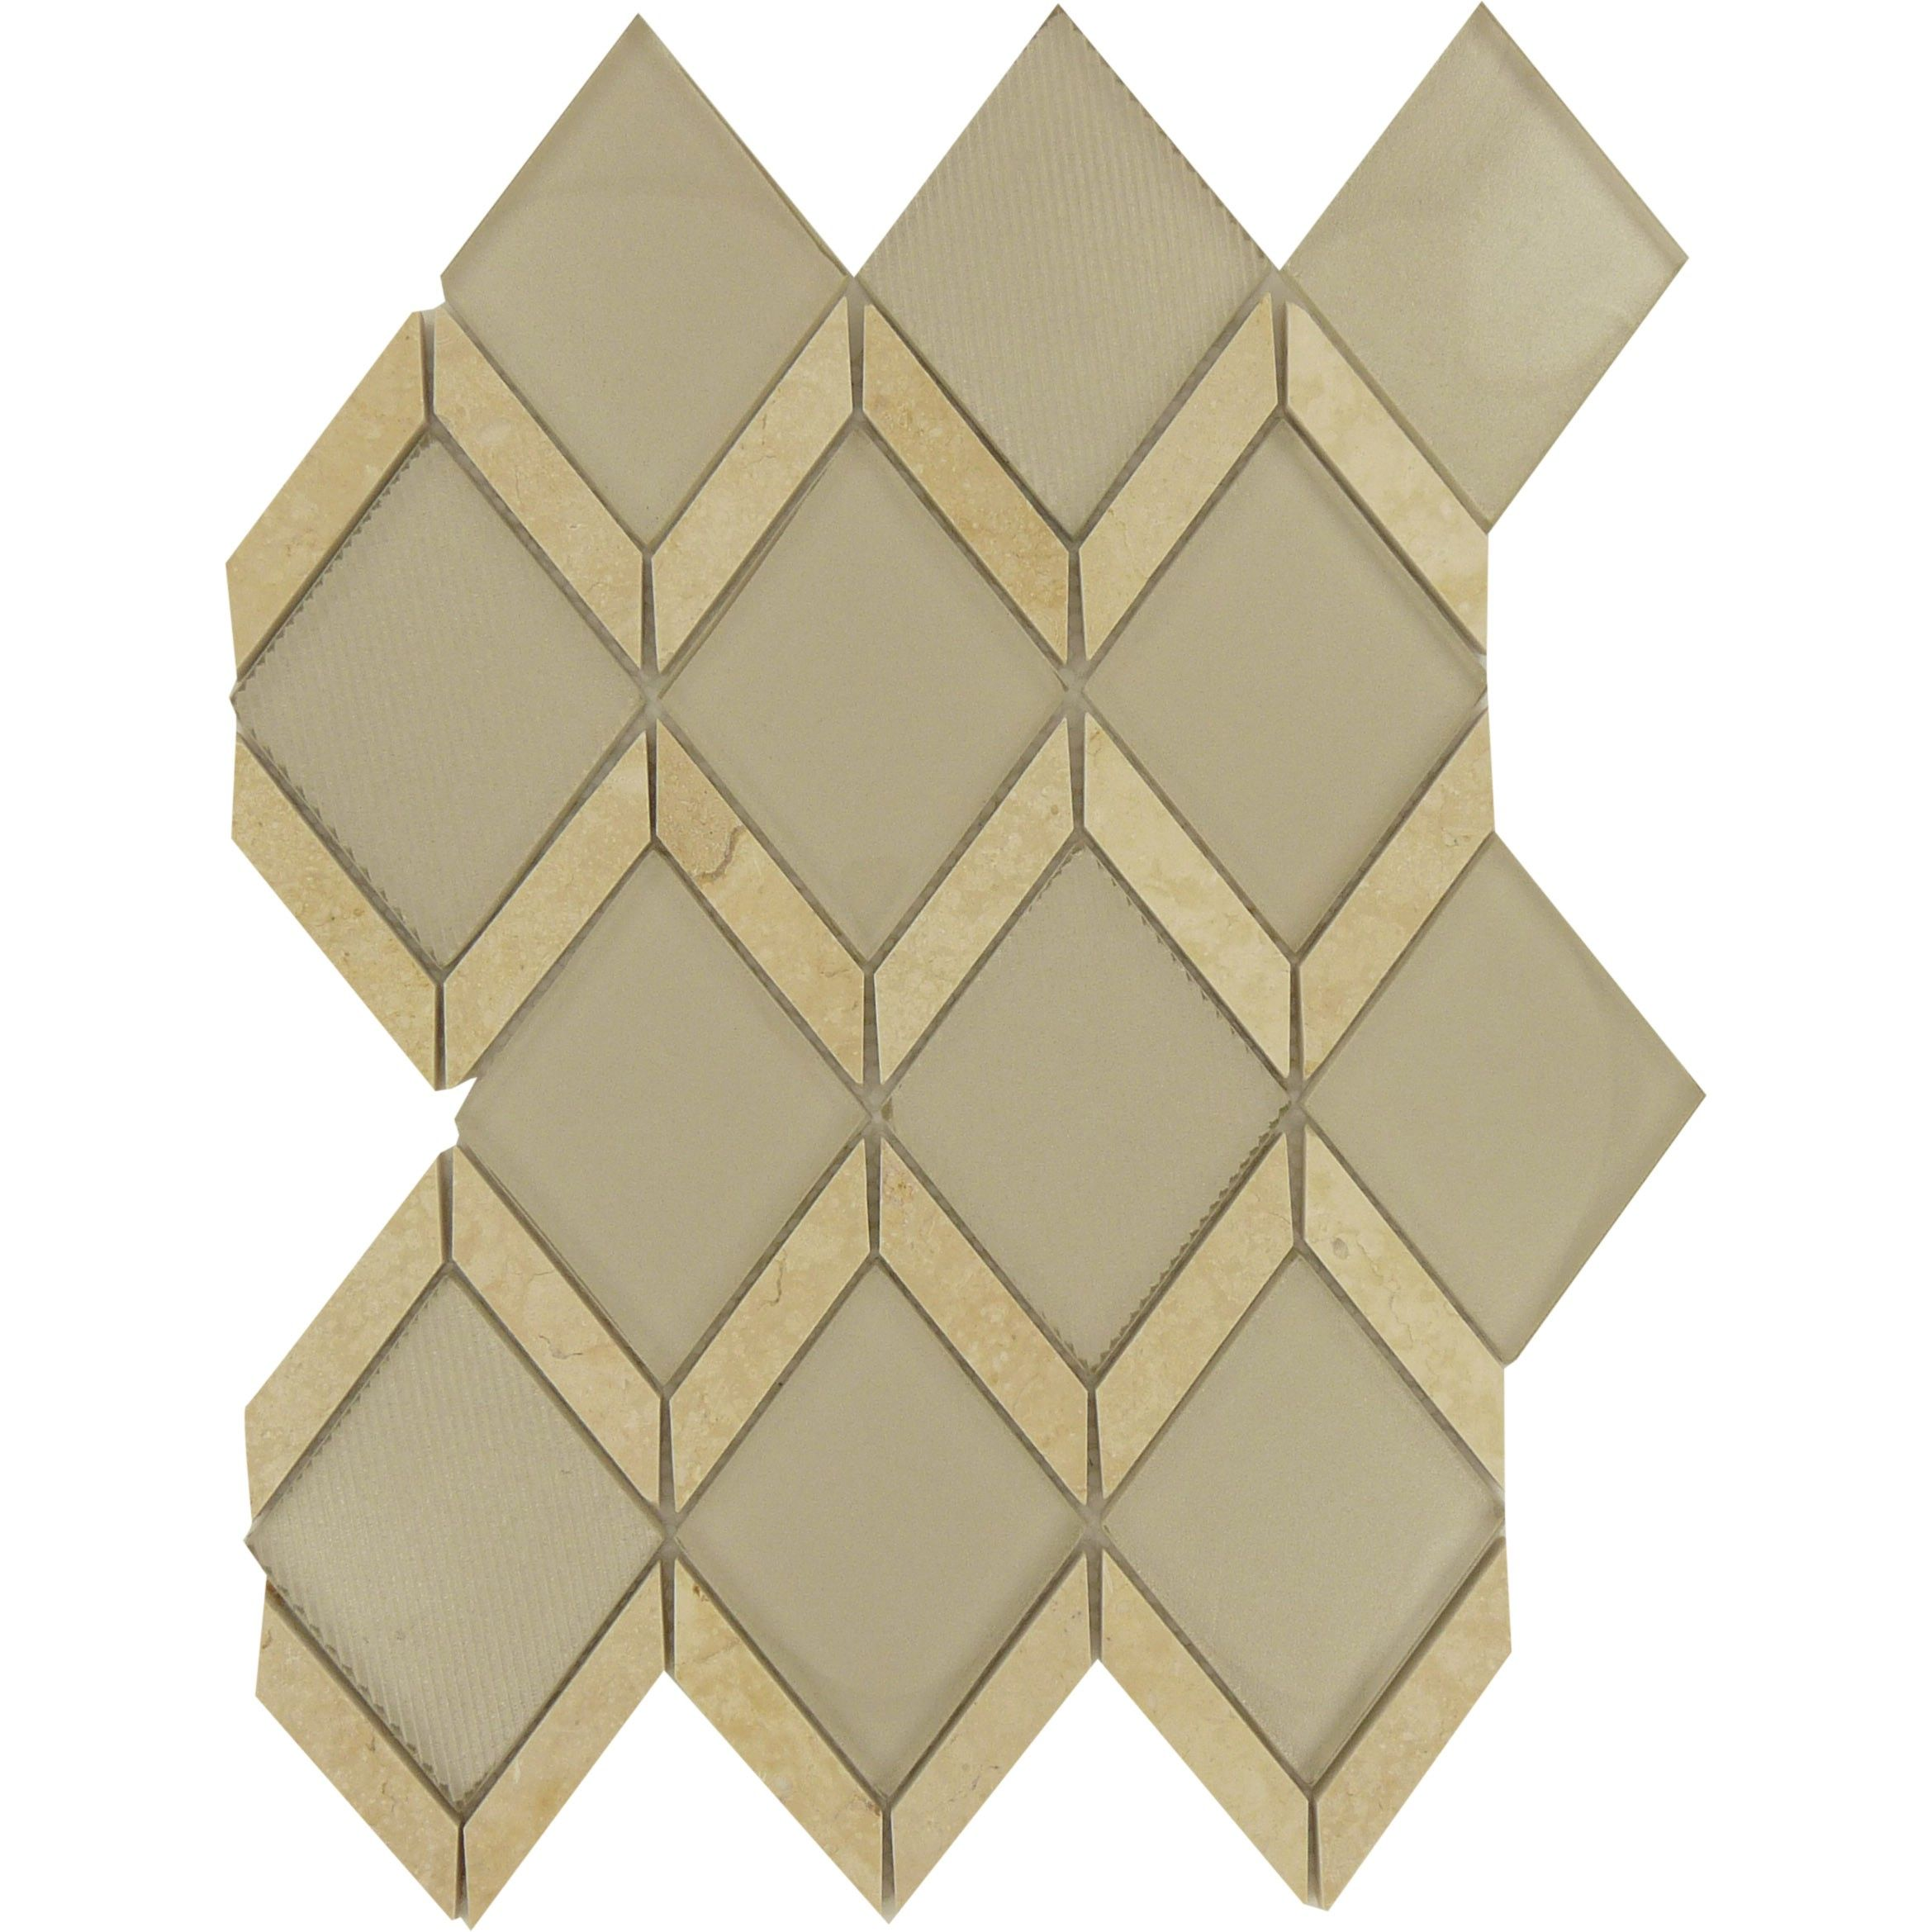 Gold Glass And Stone Diamond Tile Grout Stone Tiles And Stone